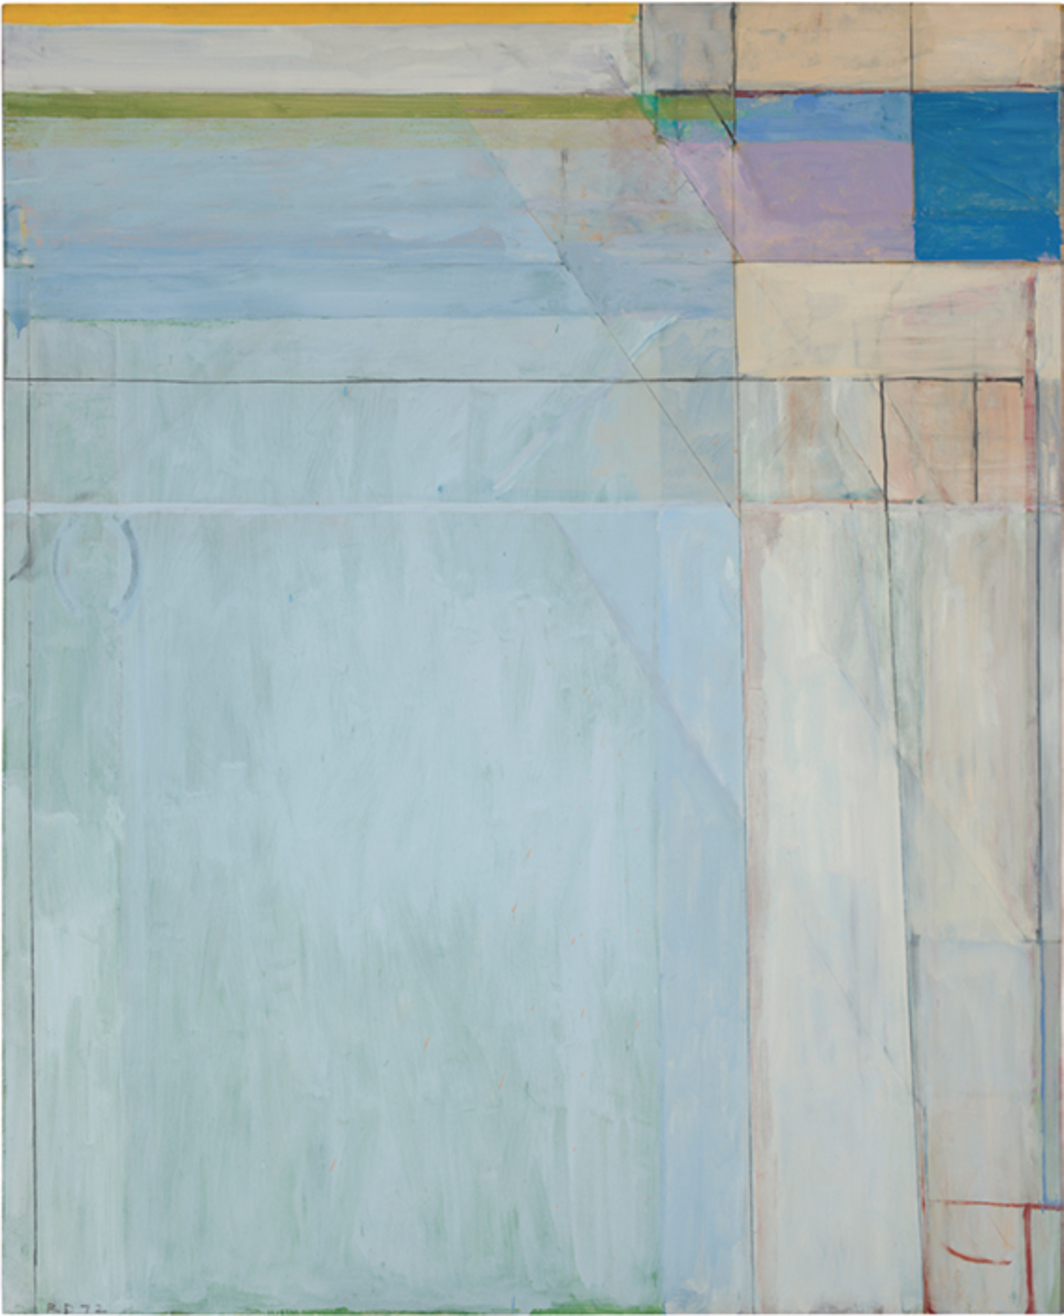 "Richard Diebenkorn, Ocean Park #54, 1972, oil and charcoal on canvas, 100 x 81"". © The Richard Diebenkorn Foundation."